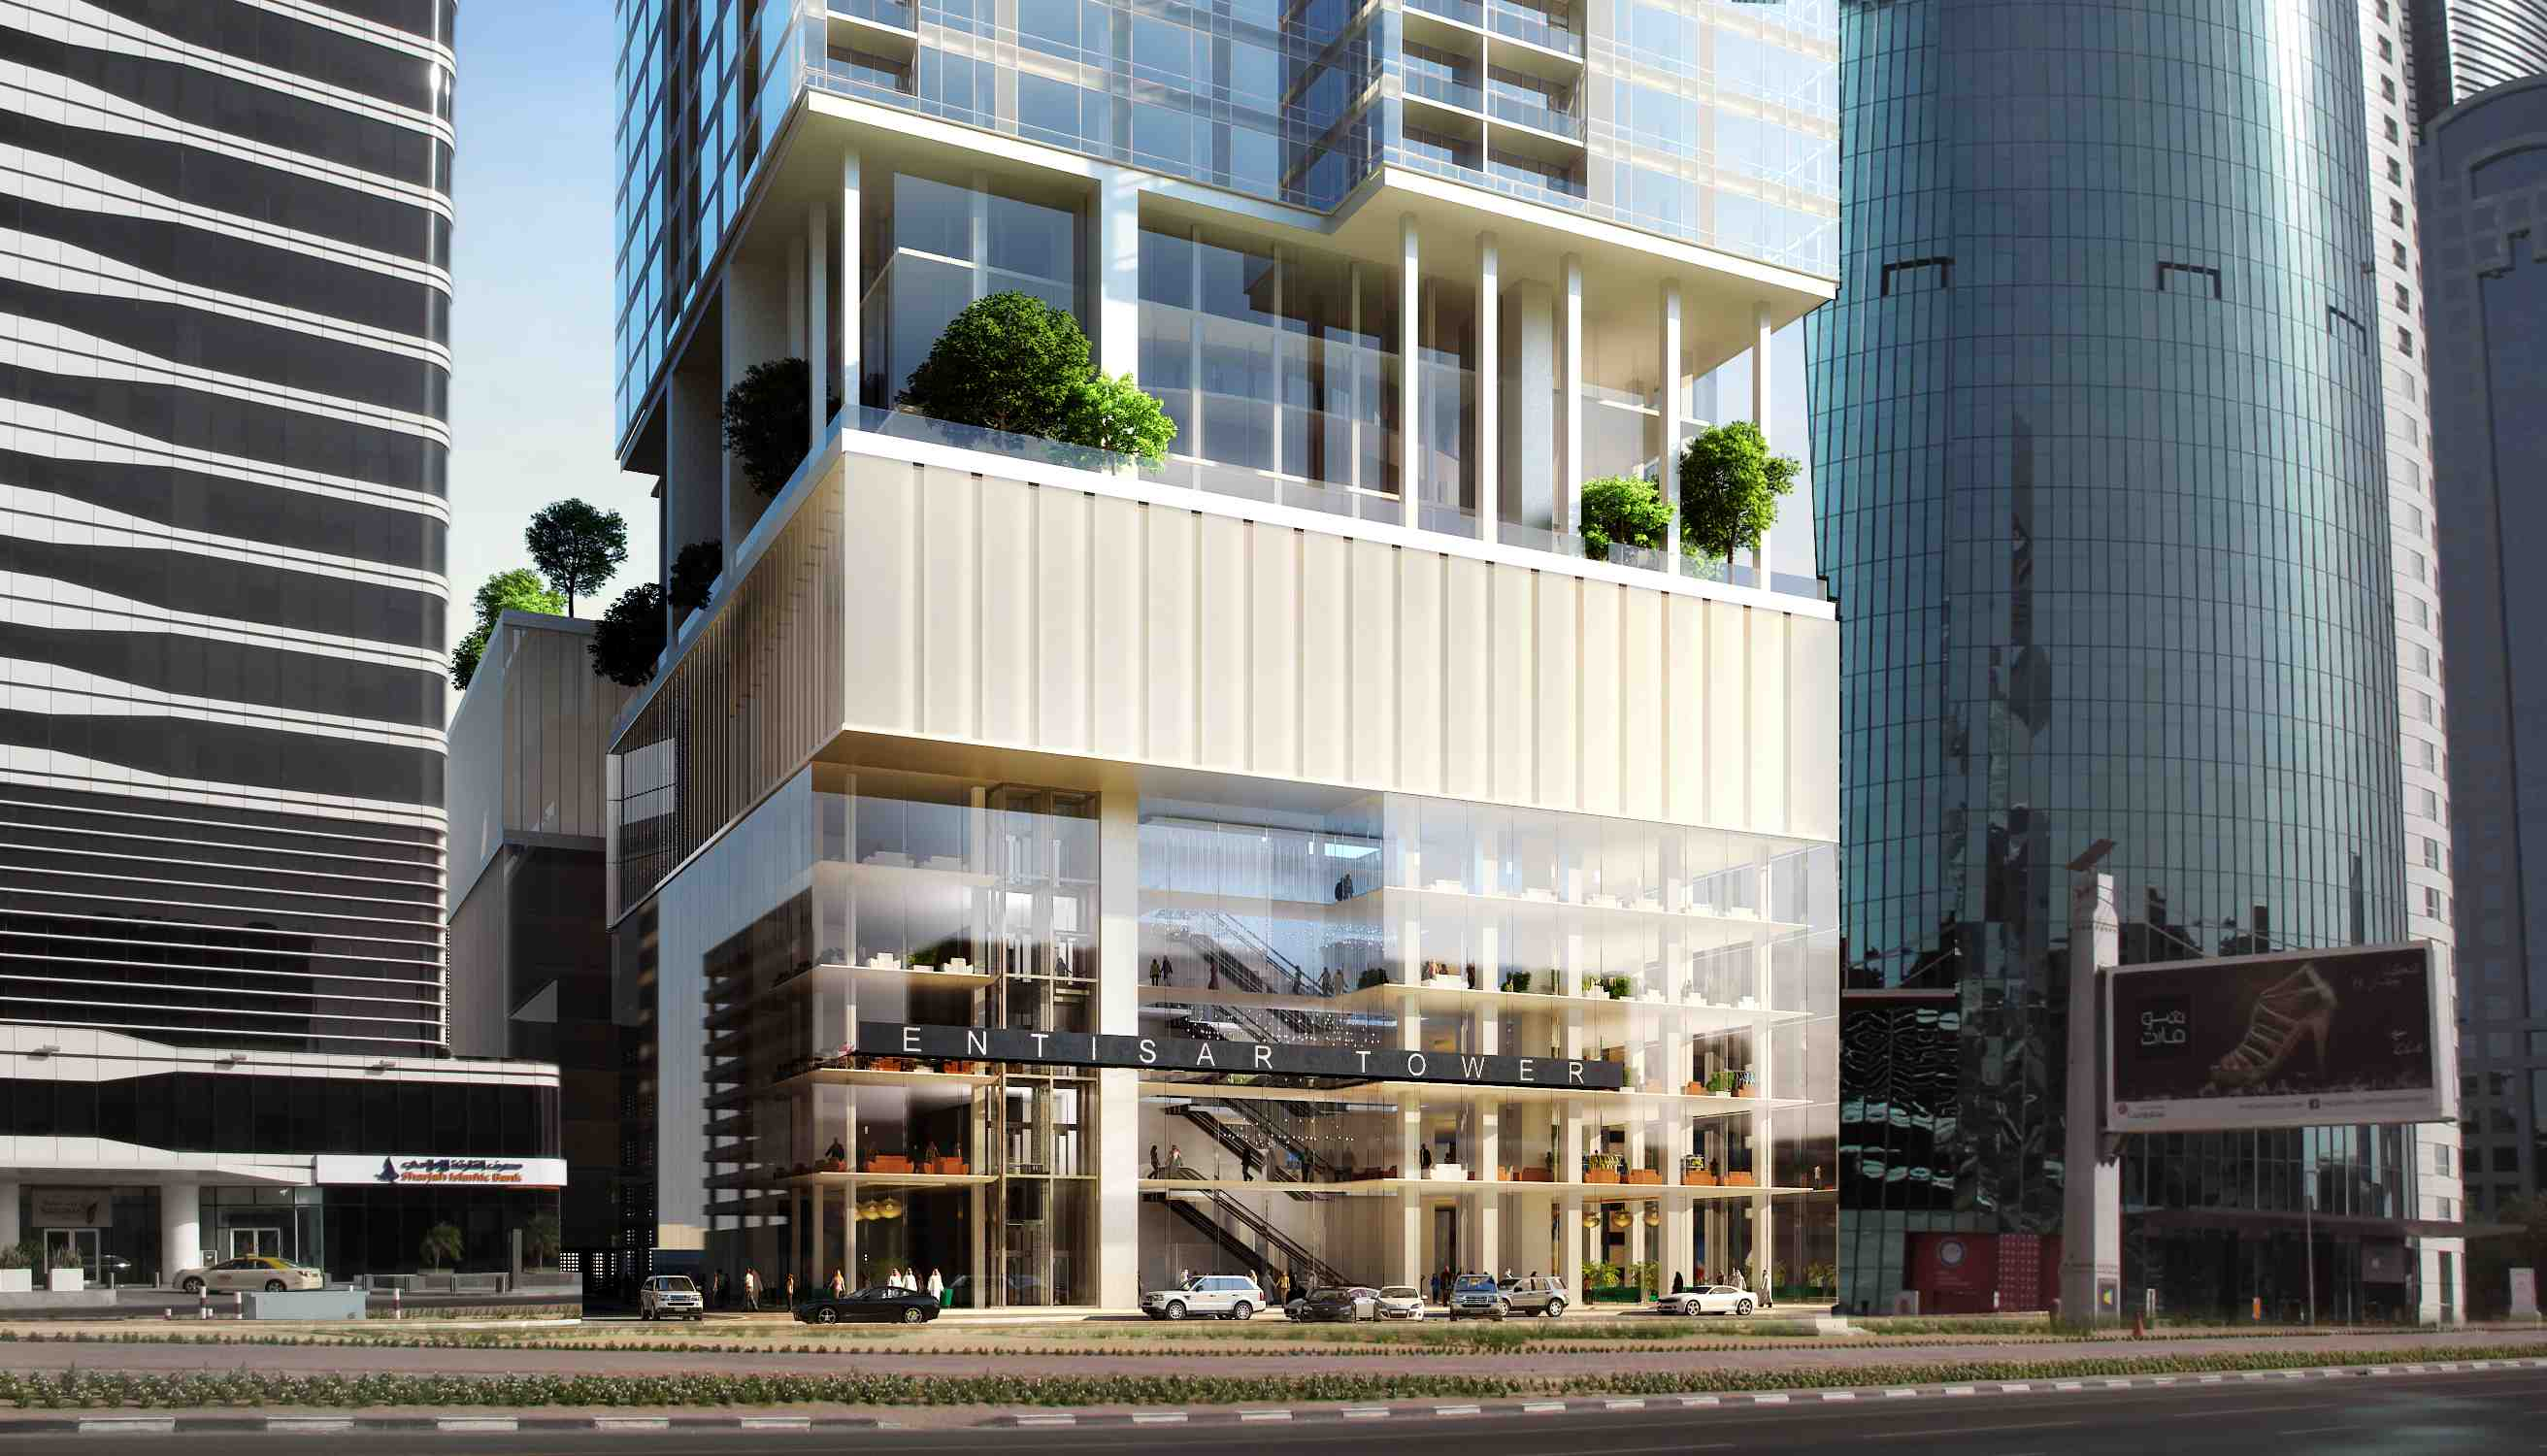 Meydan Releases 444 Serviced Apartments In Entisar Tower